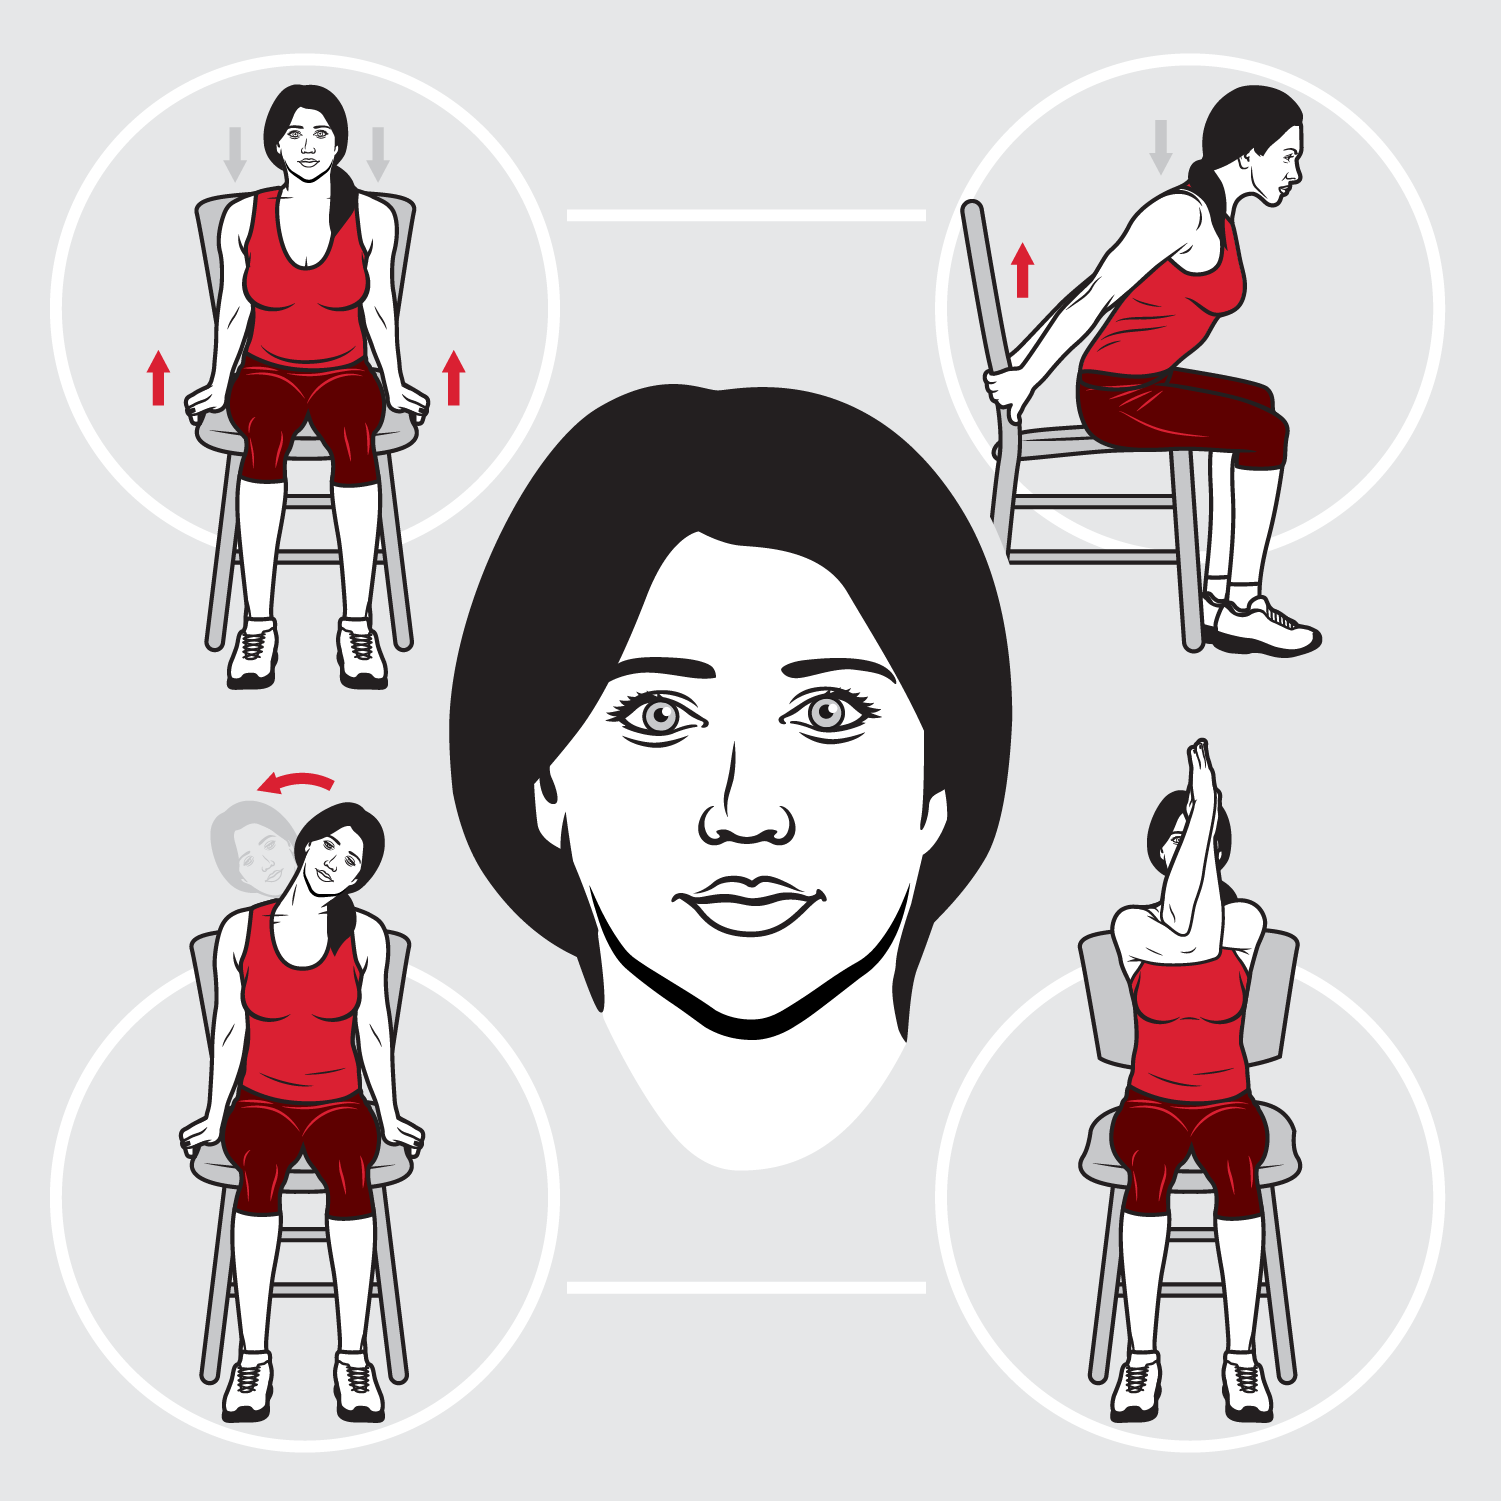 BHG_Exercises_3_TMD-01.png